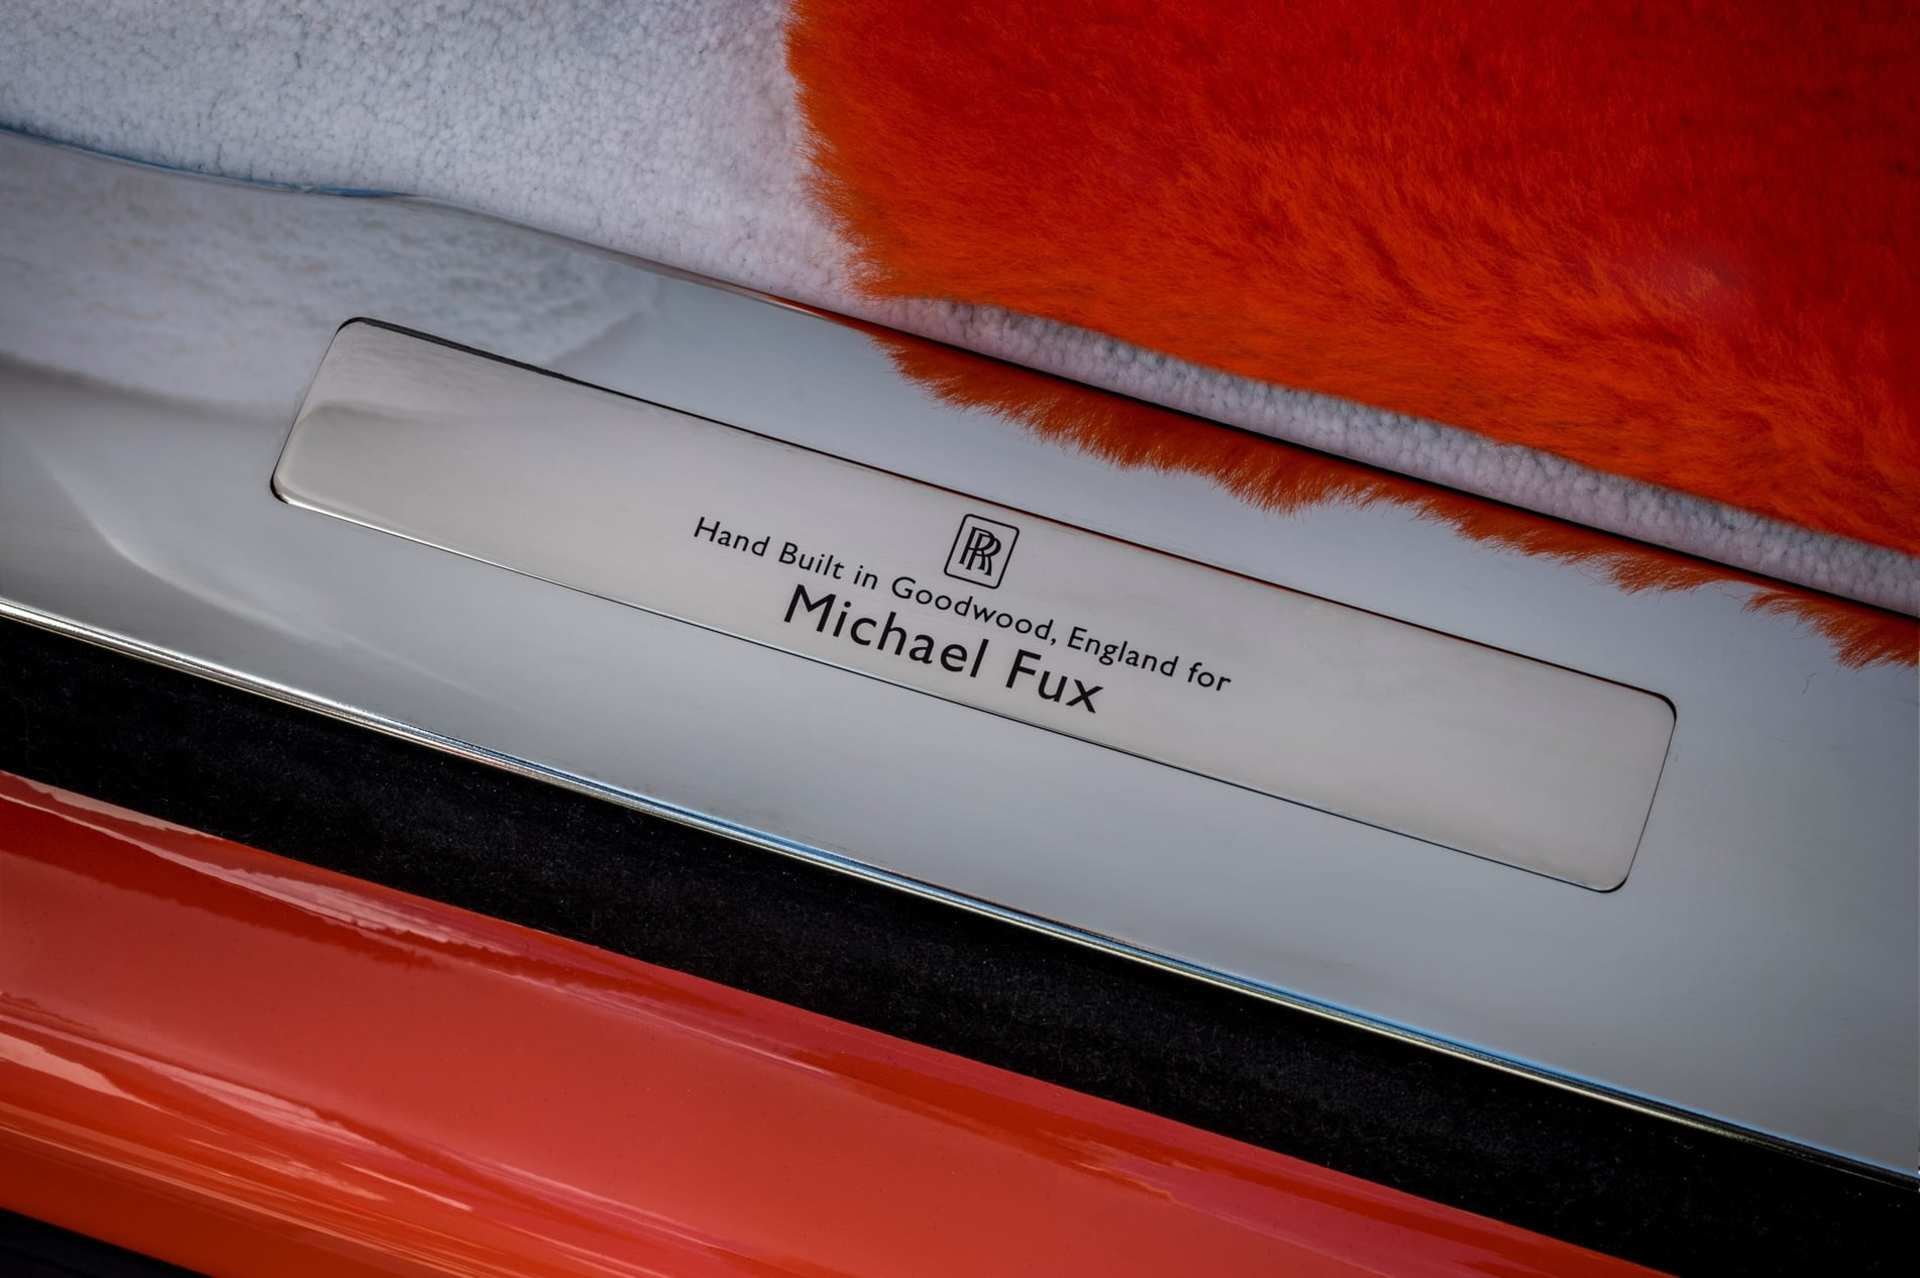 The tread plate of the Bespoke Fux Orange Cullinan Rolls-Royce motor car